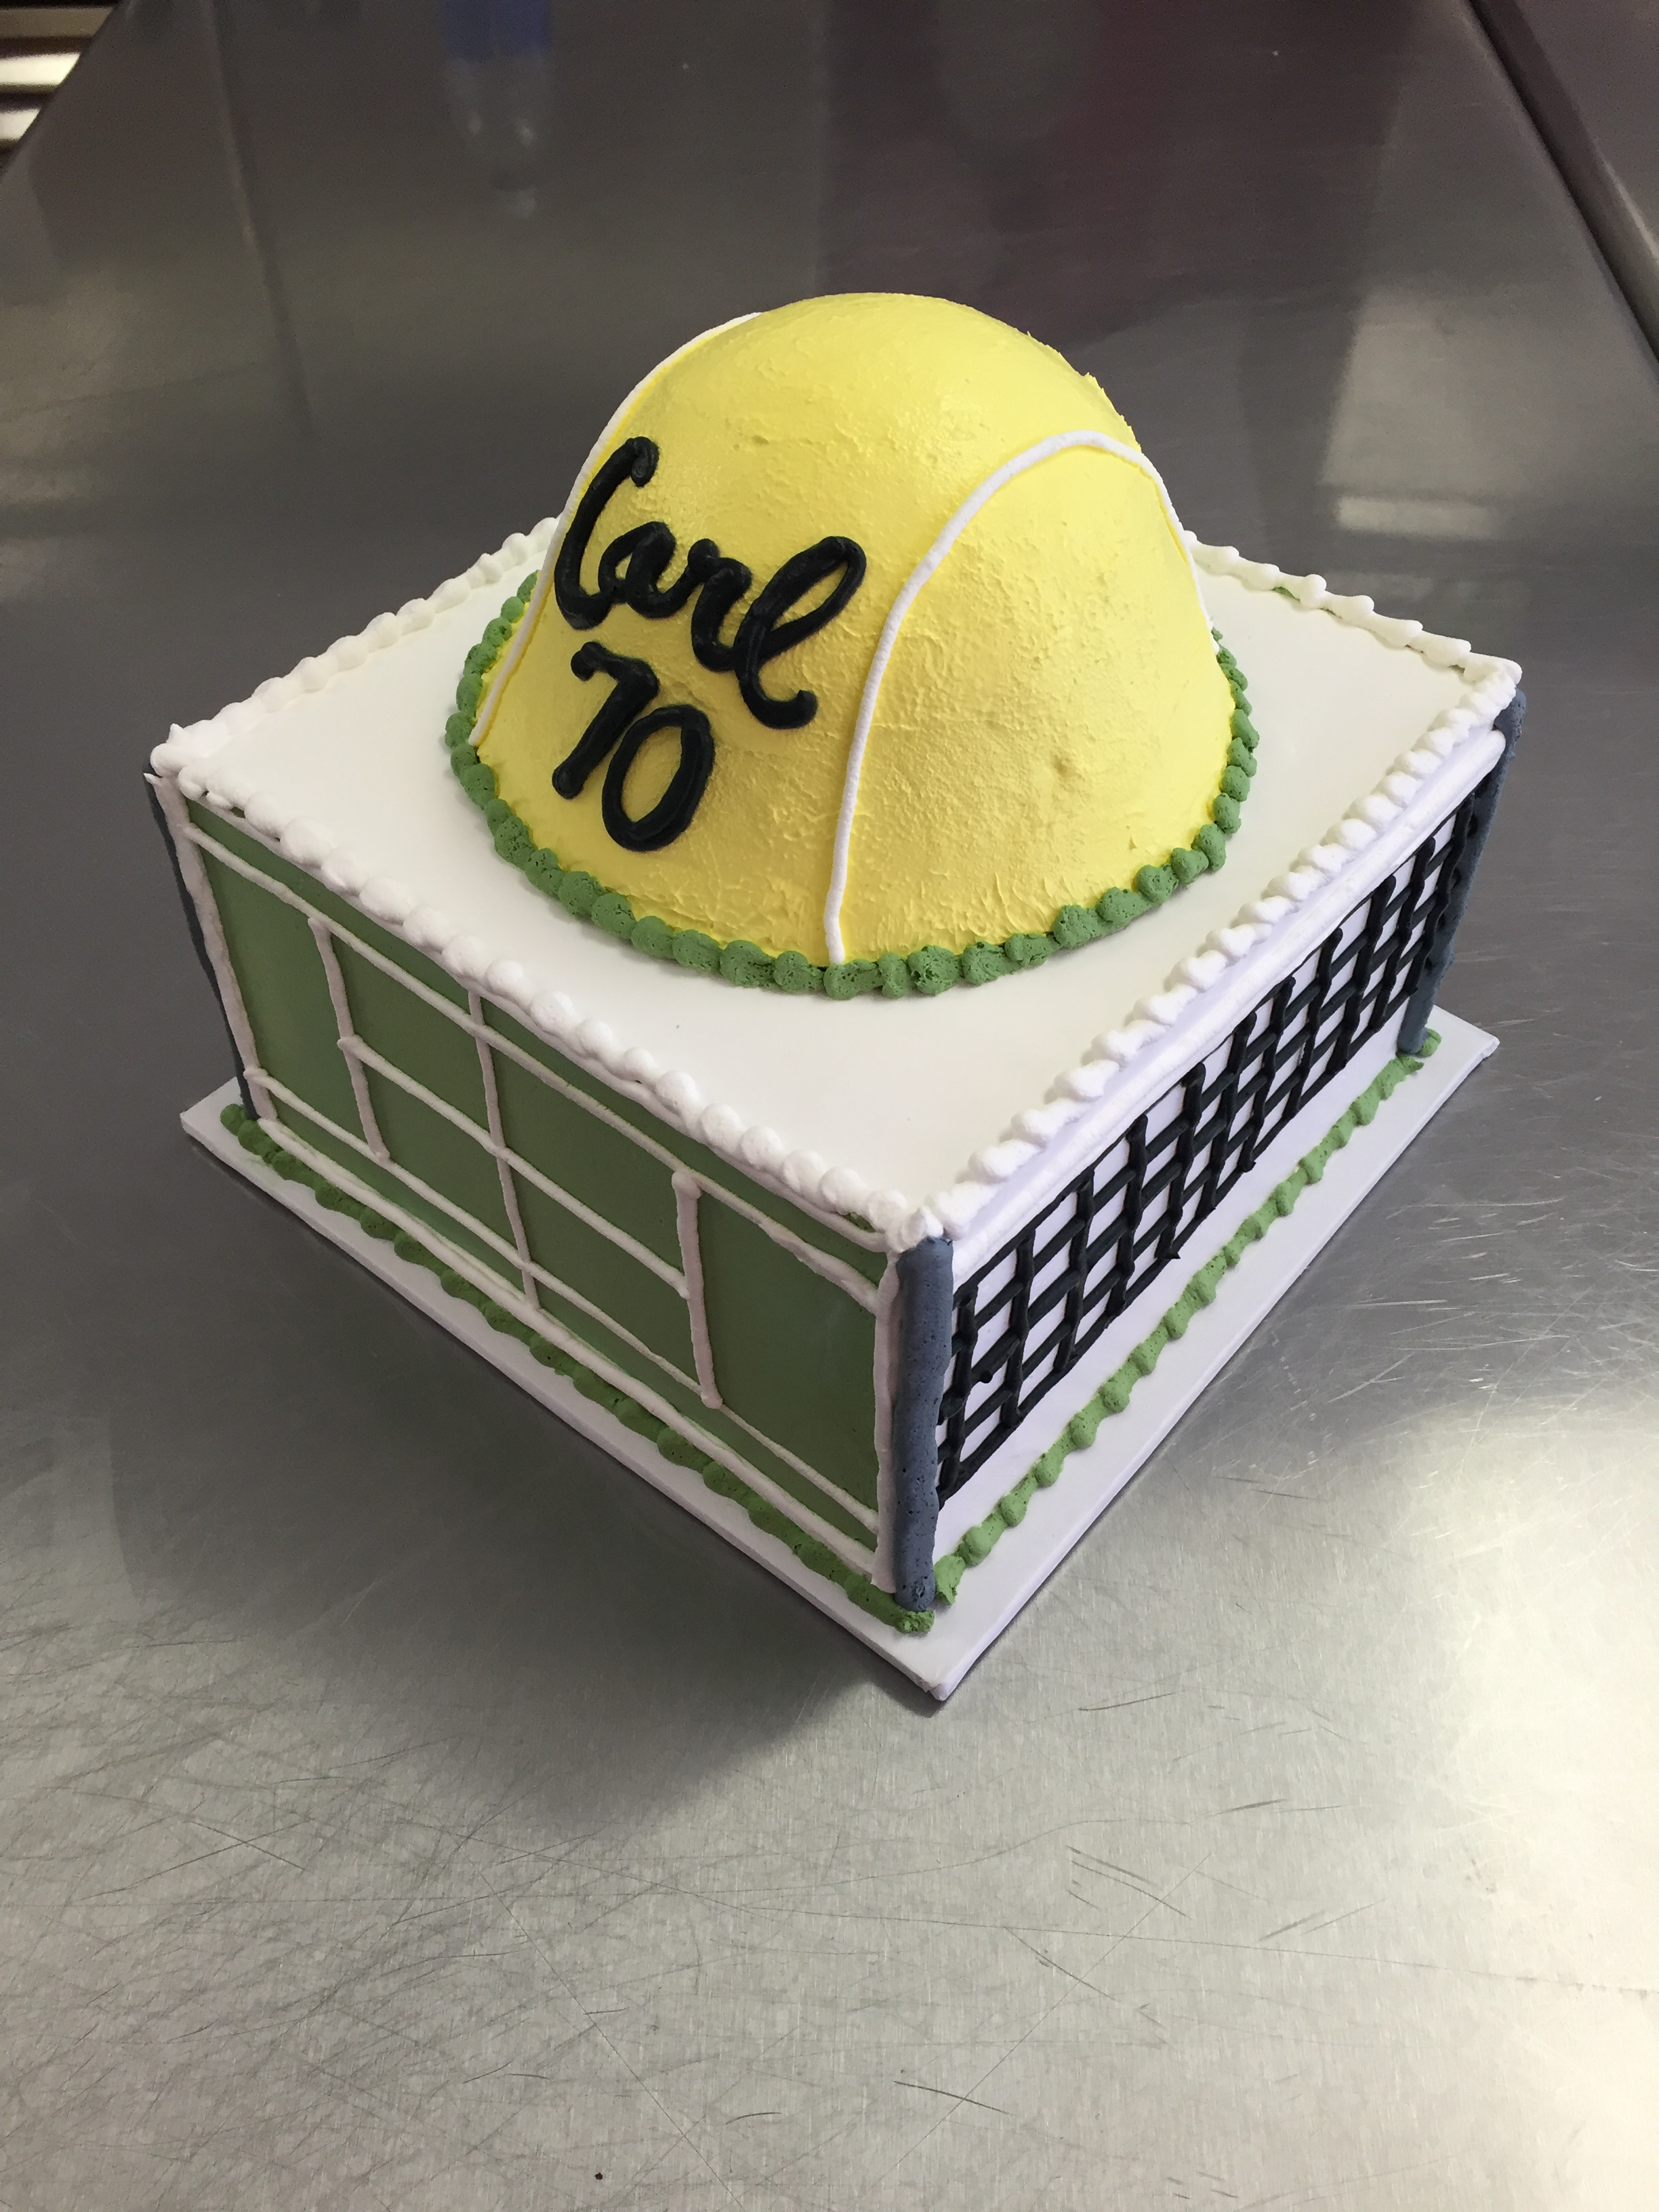 208 - Tennis Anyone?